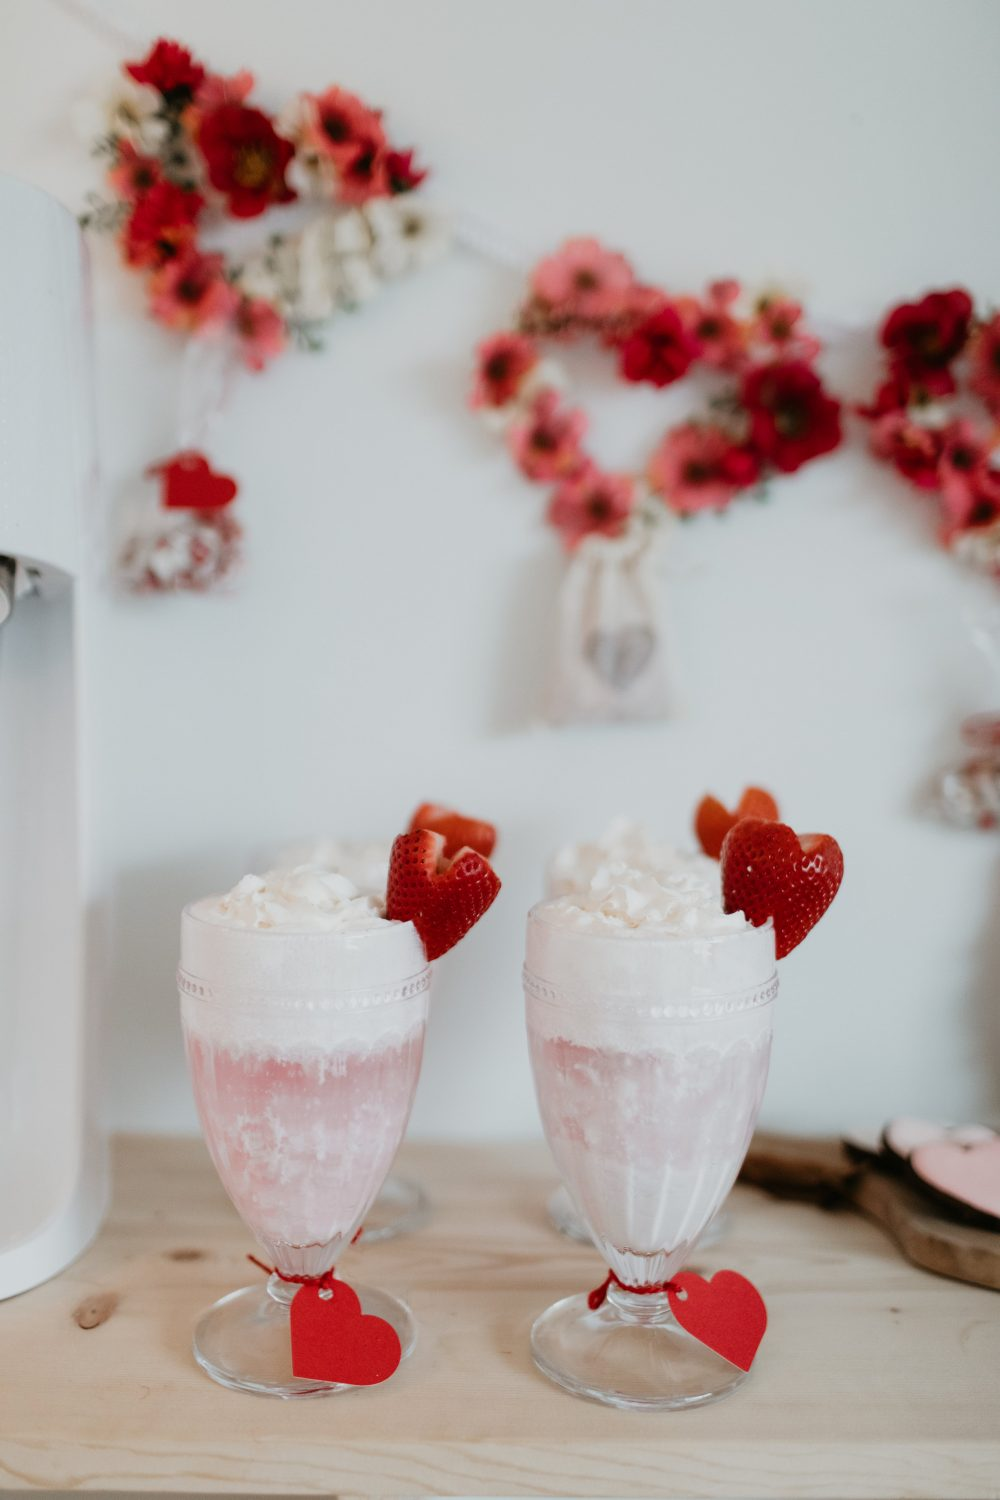 10 Party Decorations and Valentine's Food Ideas